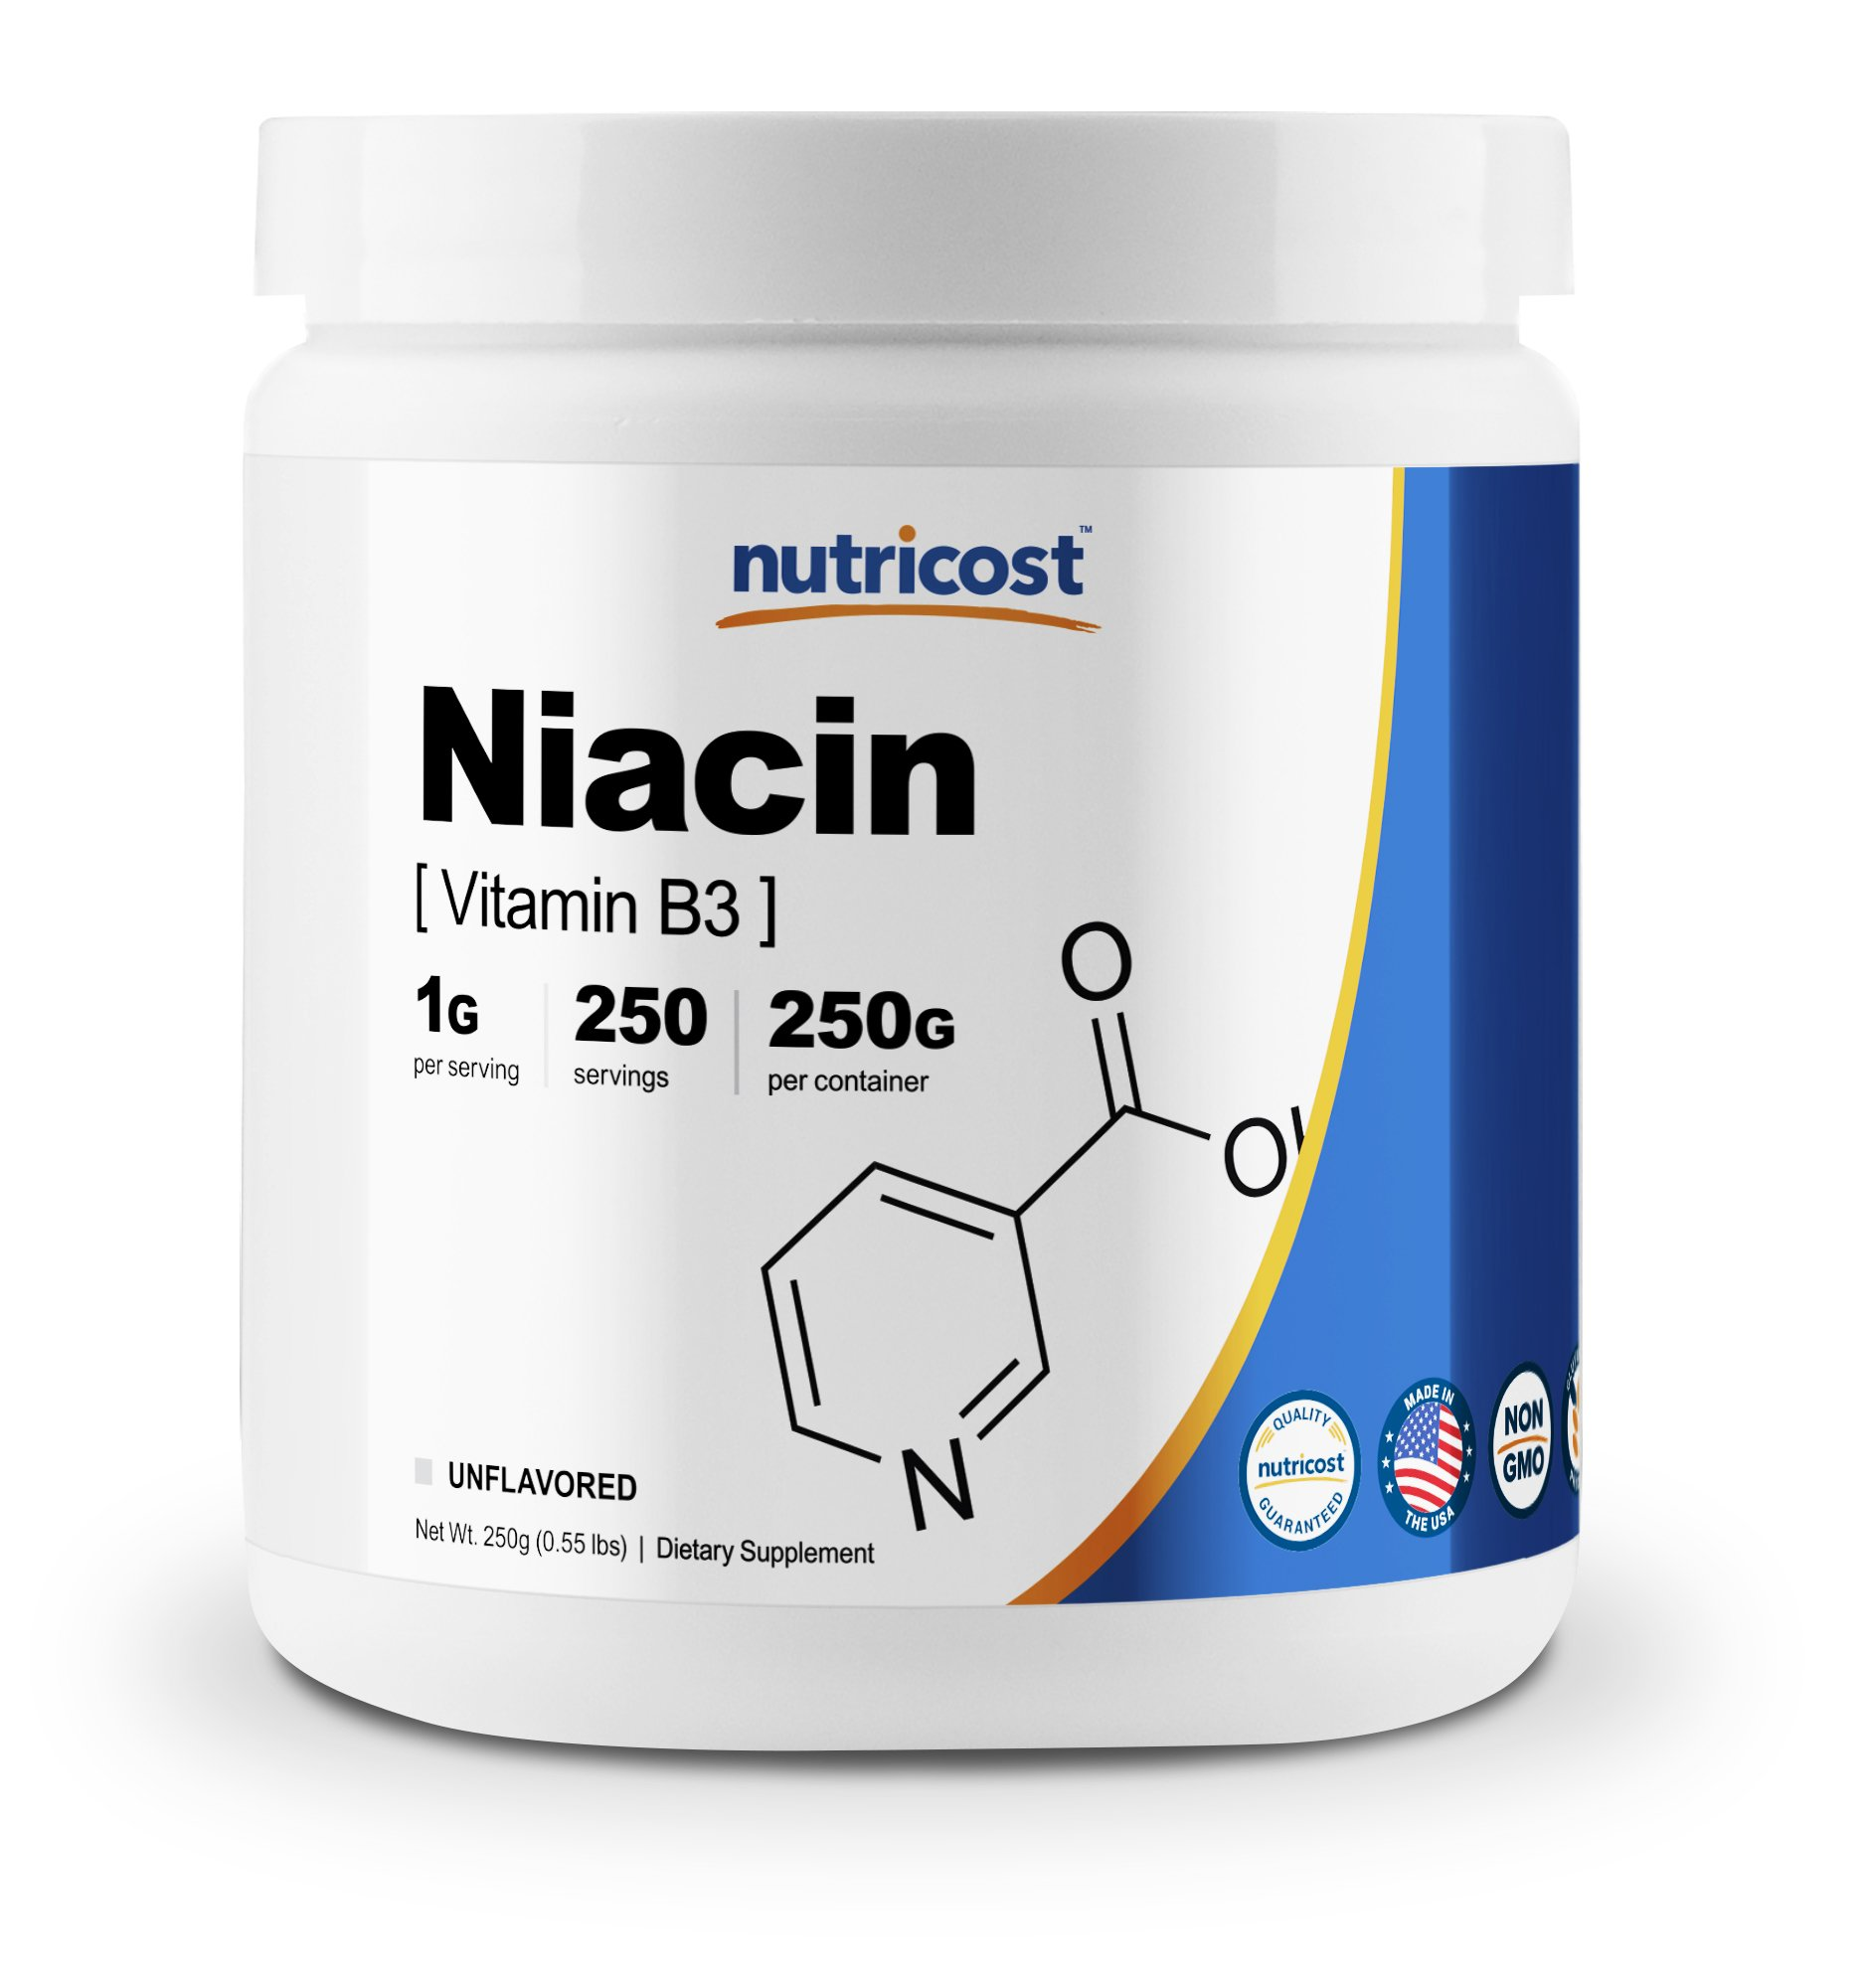 Nutricost Niacin Vitamin B3 Powder 250 Grams - 1G Per Serving - Pure, High Quality Vitamin B3 Powder